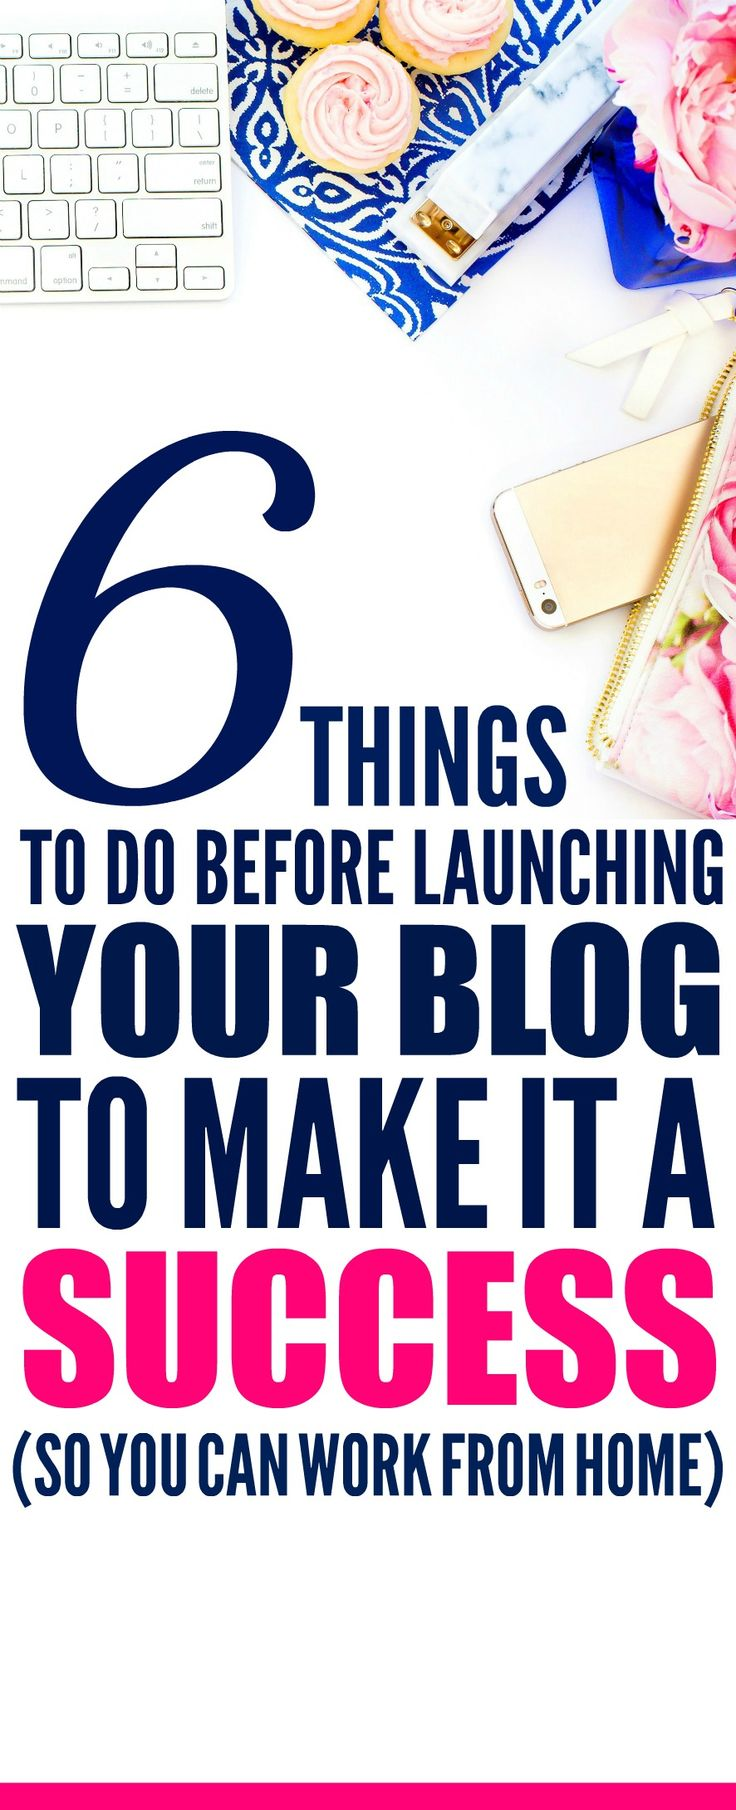 These 6 easy steps for you need to do if you want to be a successful blogger are THE BEST! I'm so glad I found these GREAT beginner blogger tips! Now I have awesome hacks for making money from home! Definitely pinning!